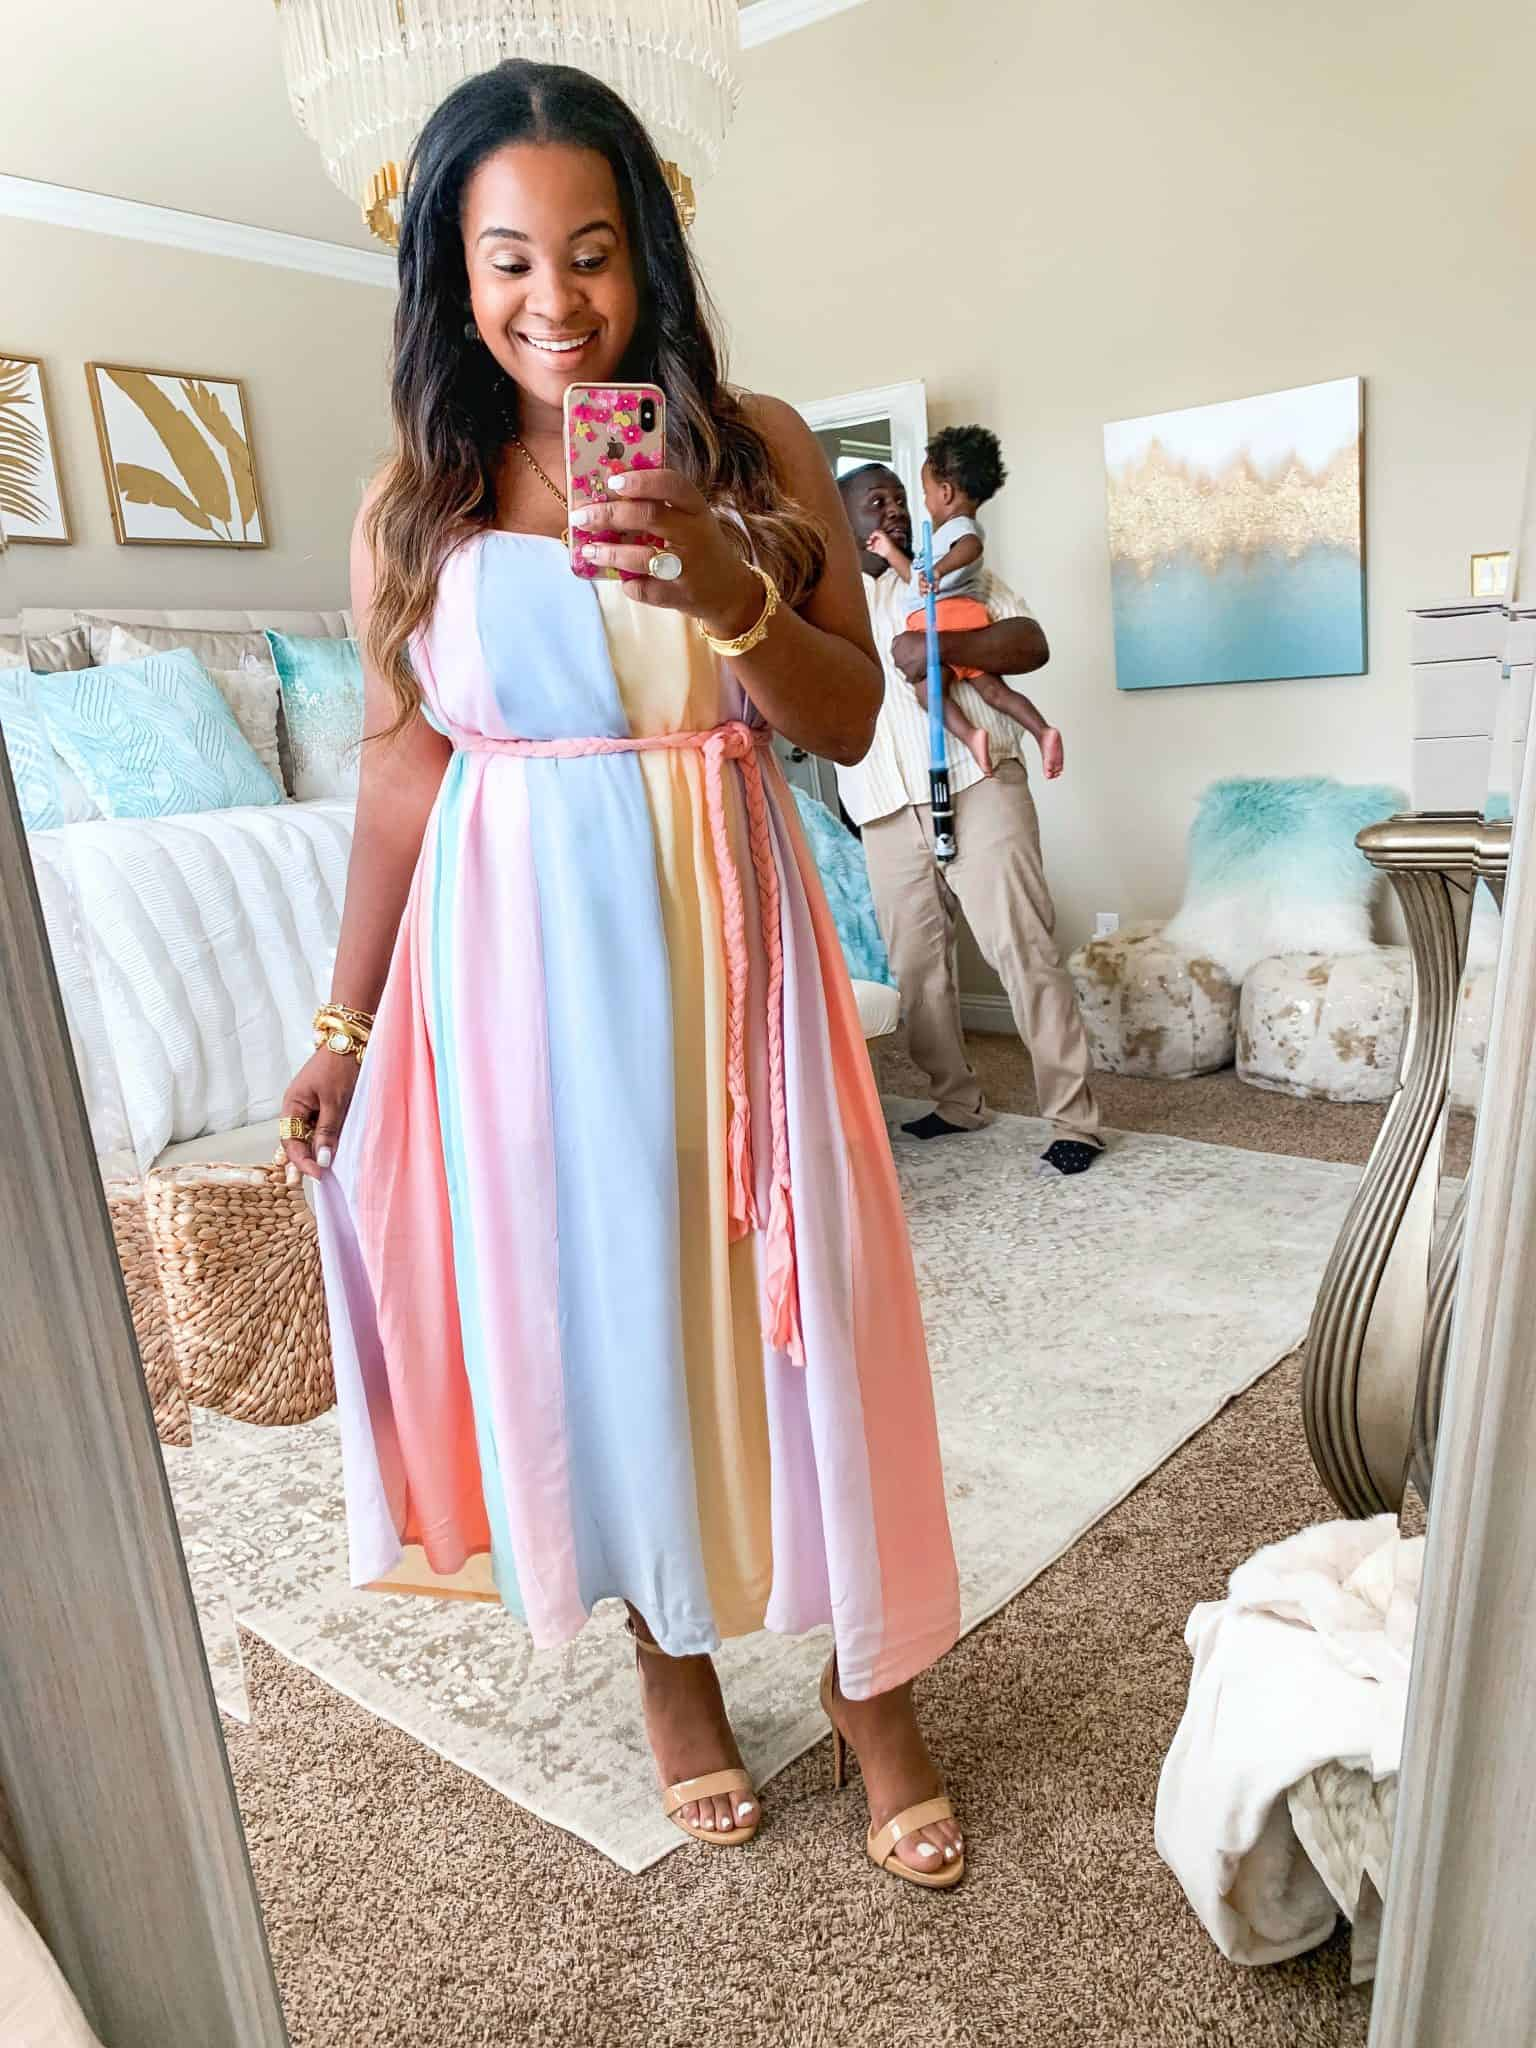 Red Dress Boutique summer favorites featured by top US fashion blog, Glamorous Versatility: image of a woman wearing a rainbow maxi dress